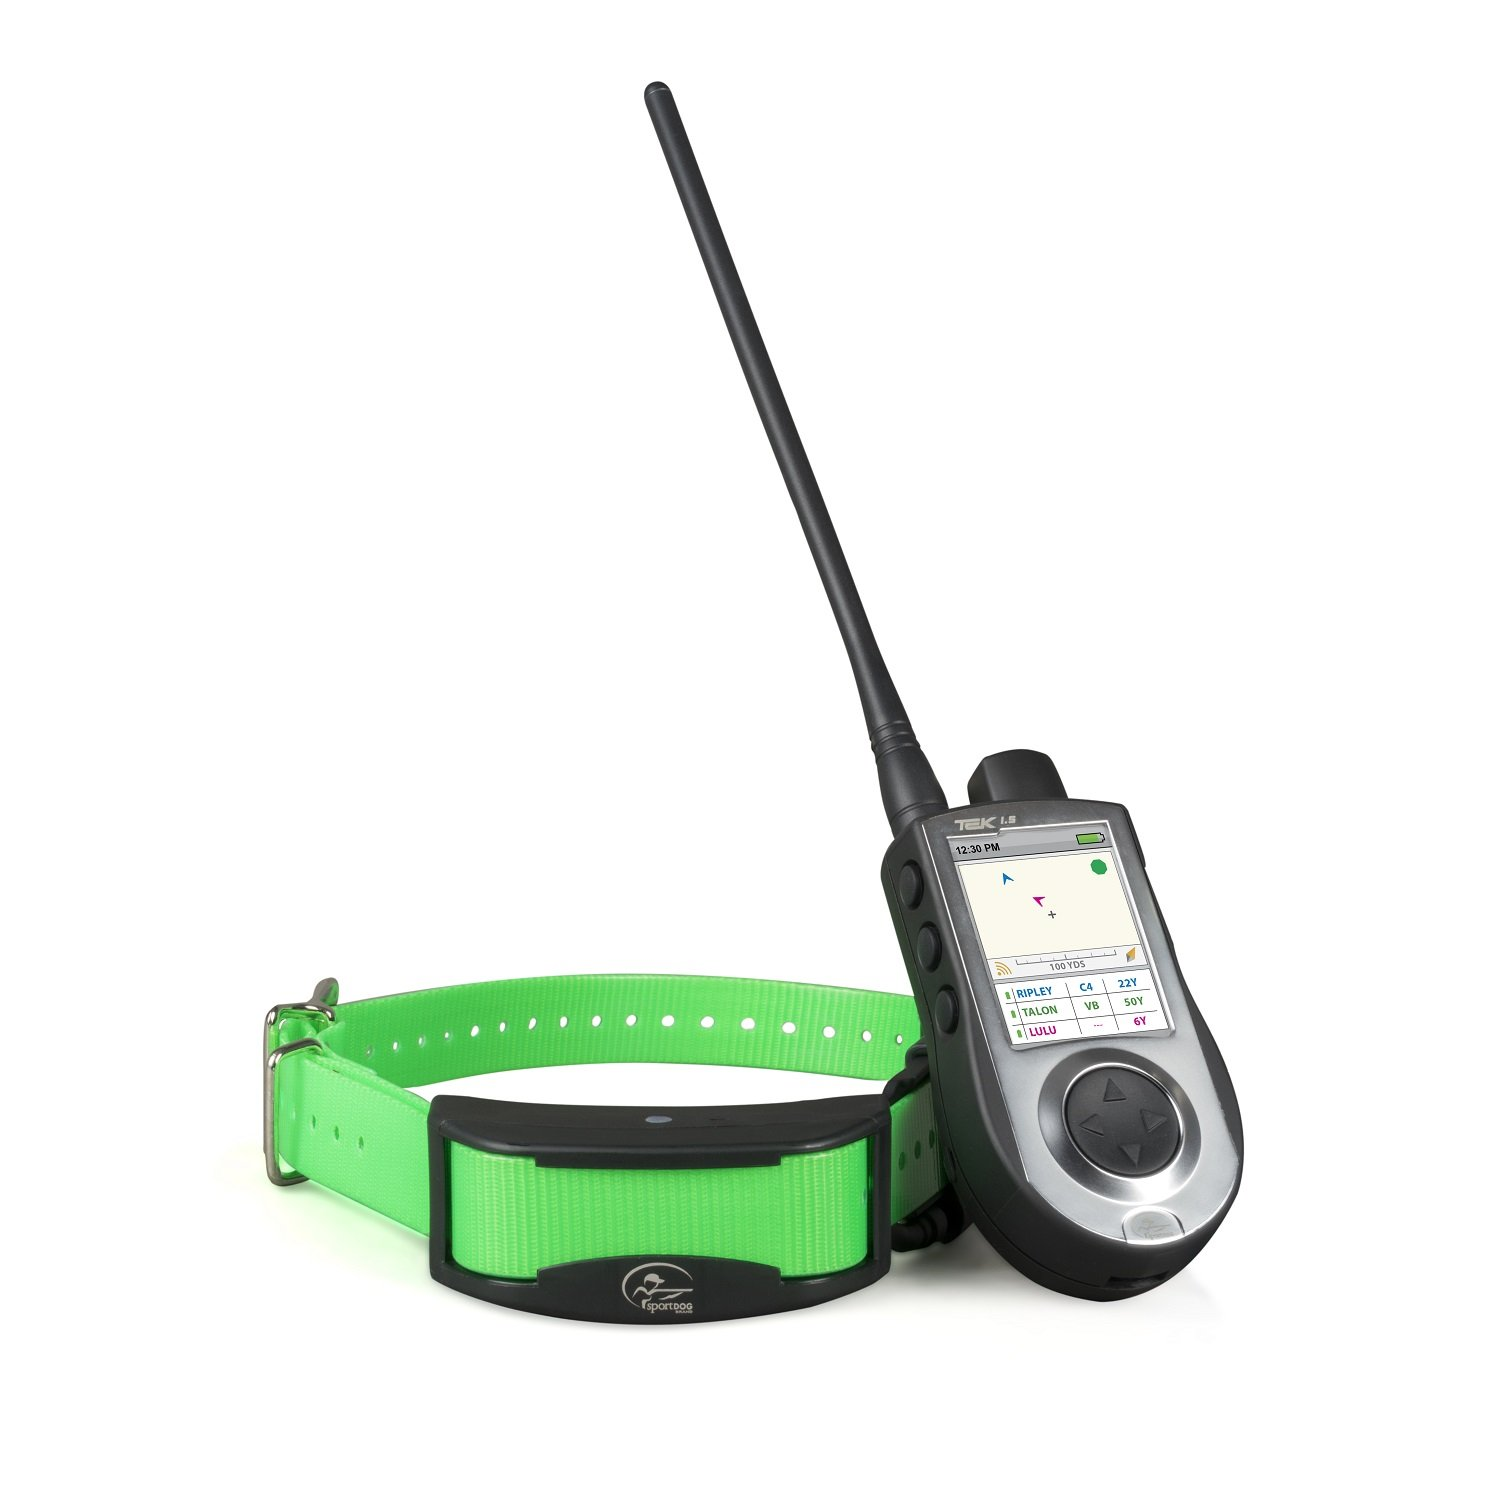 TEK 1.5 SportDOG Brand TEK Series 1.5 GPS Tracking + E-Collar System 7 Mile Range Waterproof and Rechargeable Tone, Vibration, and 99 Levels of Shock Expandable to Locate and Train up to 12 Dogs